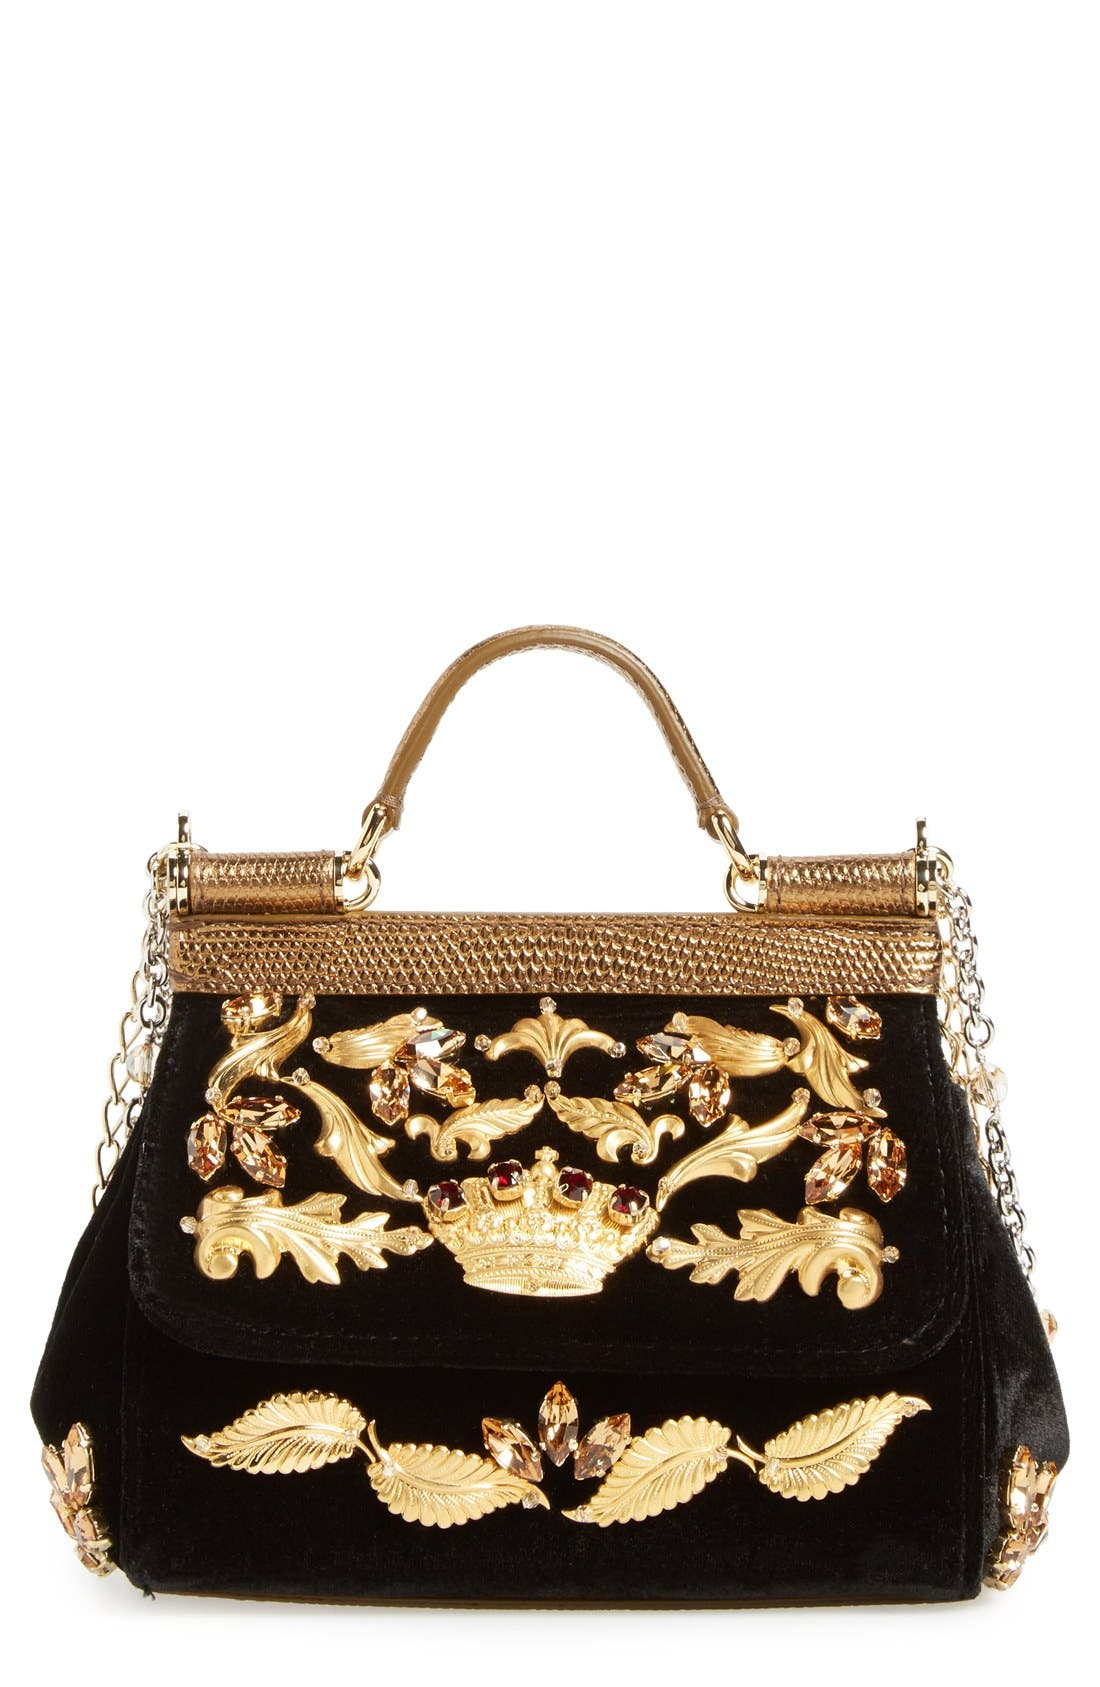 Alternate Image 1 Selected - Dolce&Gabbana 'Mini Sicily' Velvet Shoulder Bag